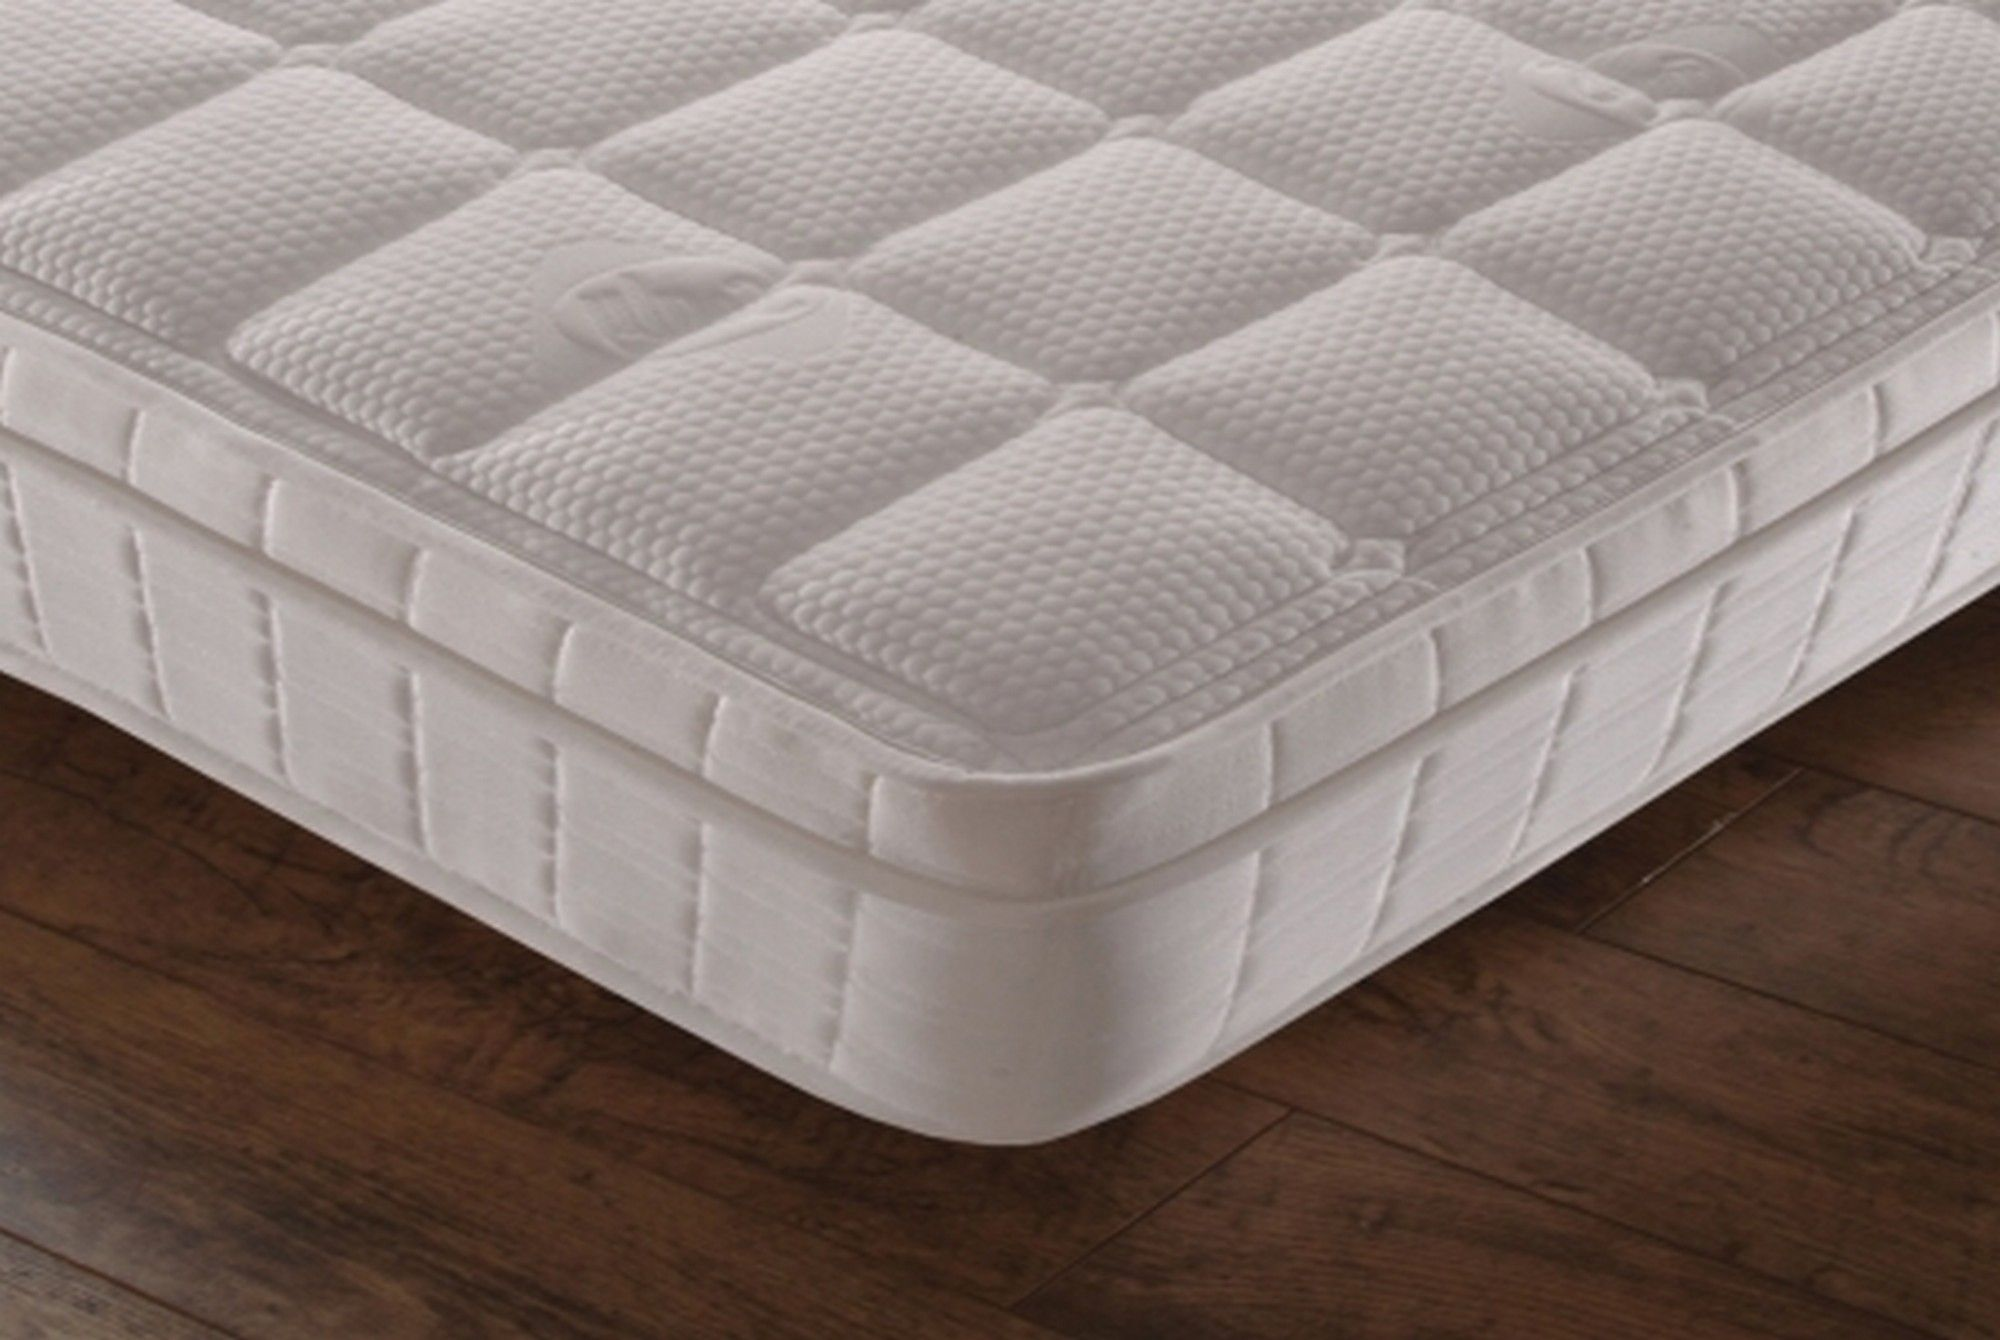 Quality Mattress Uk Choose Your Quality Single Double King Size Of Latex Mattress